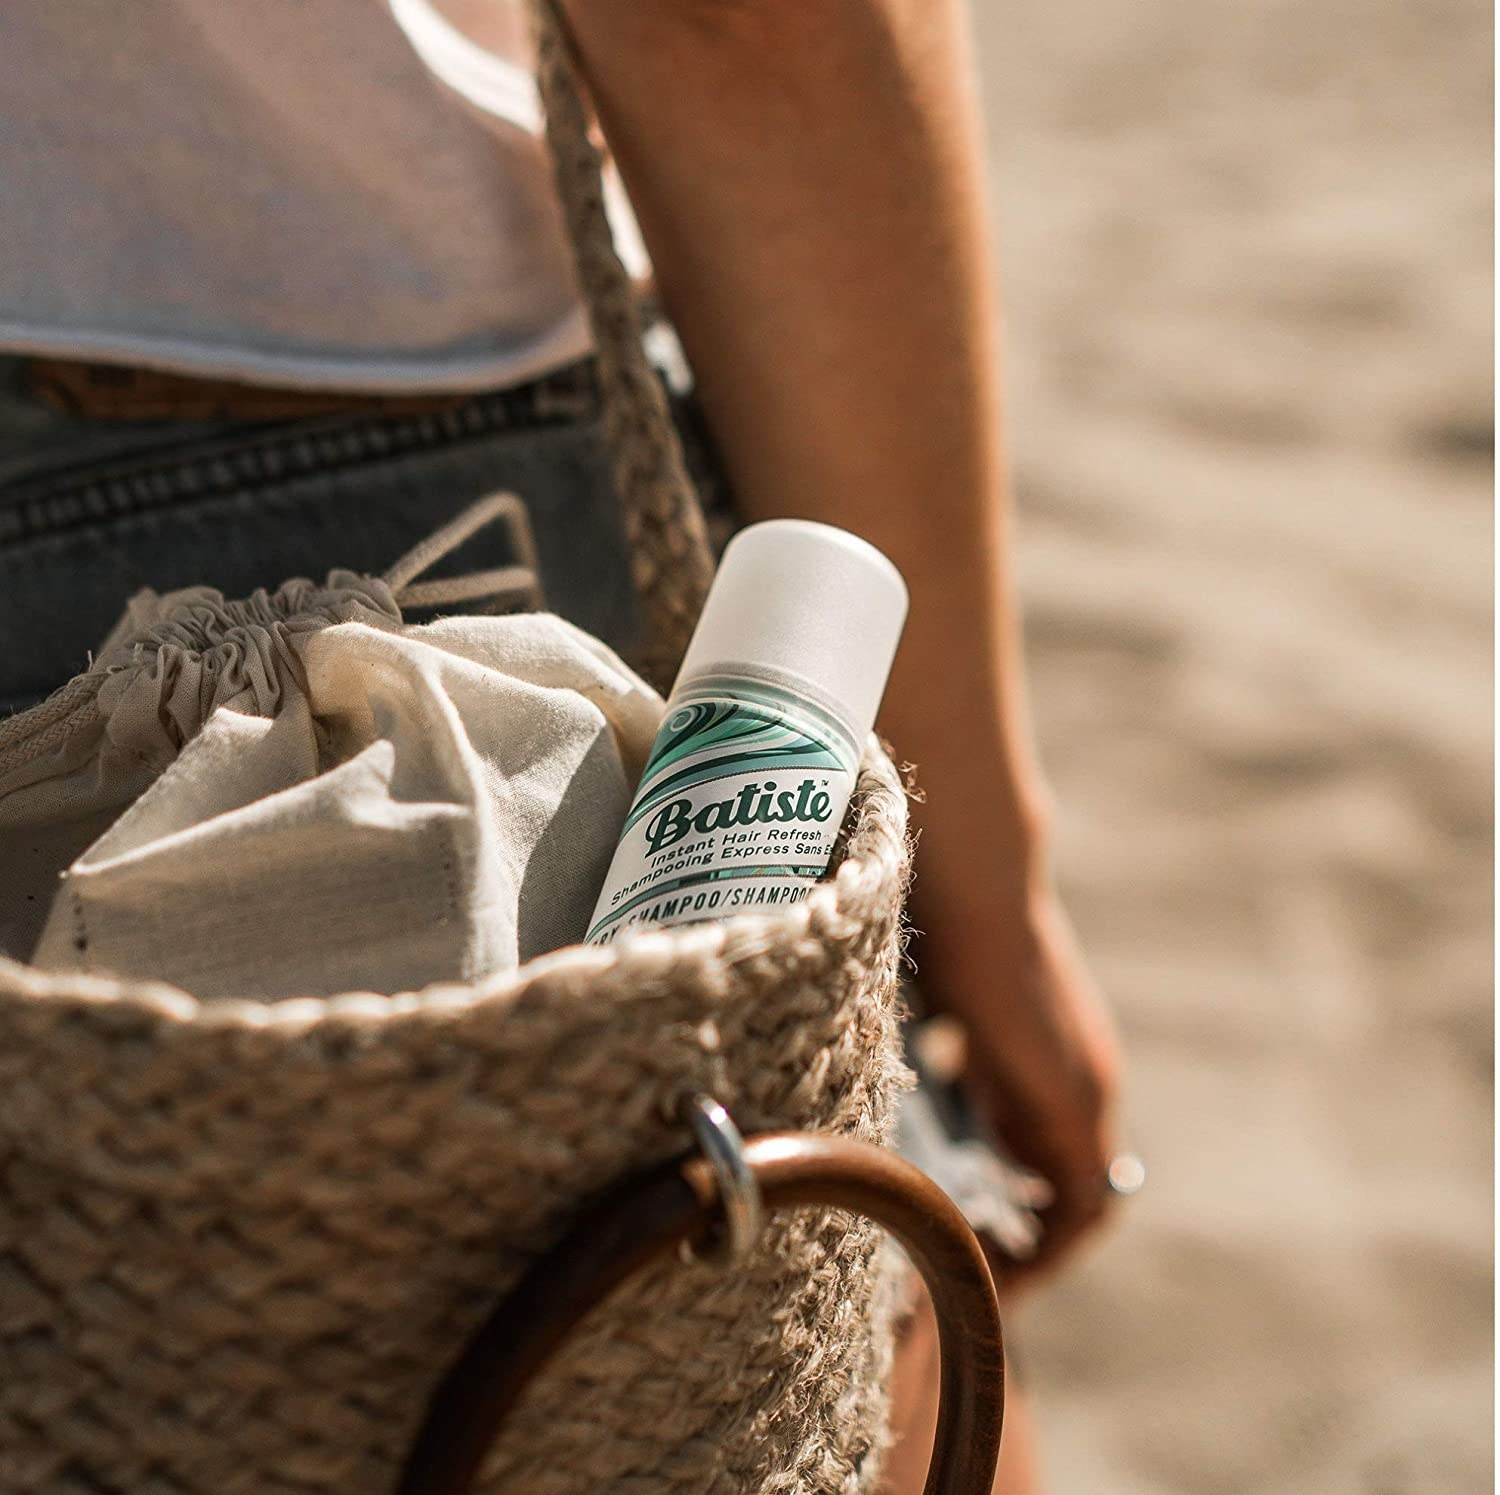 A bottle of Batiste dry shampoo poking out of a model's purse